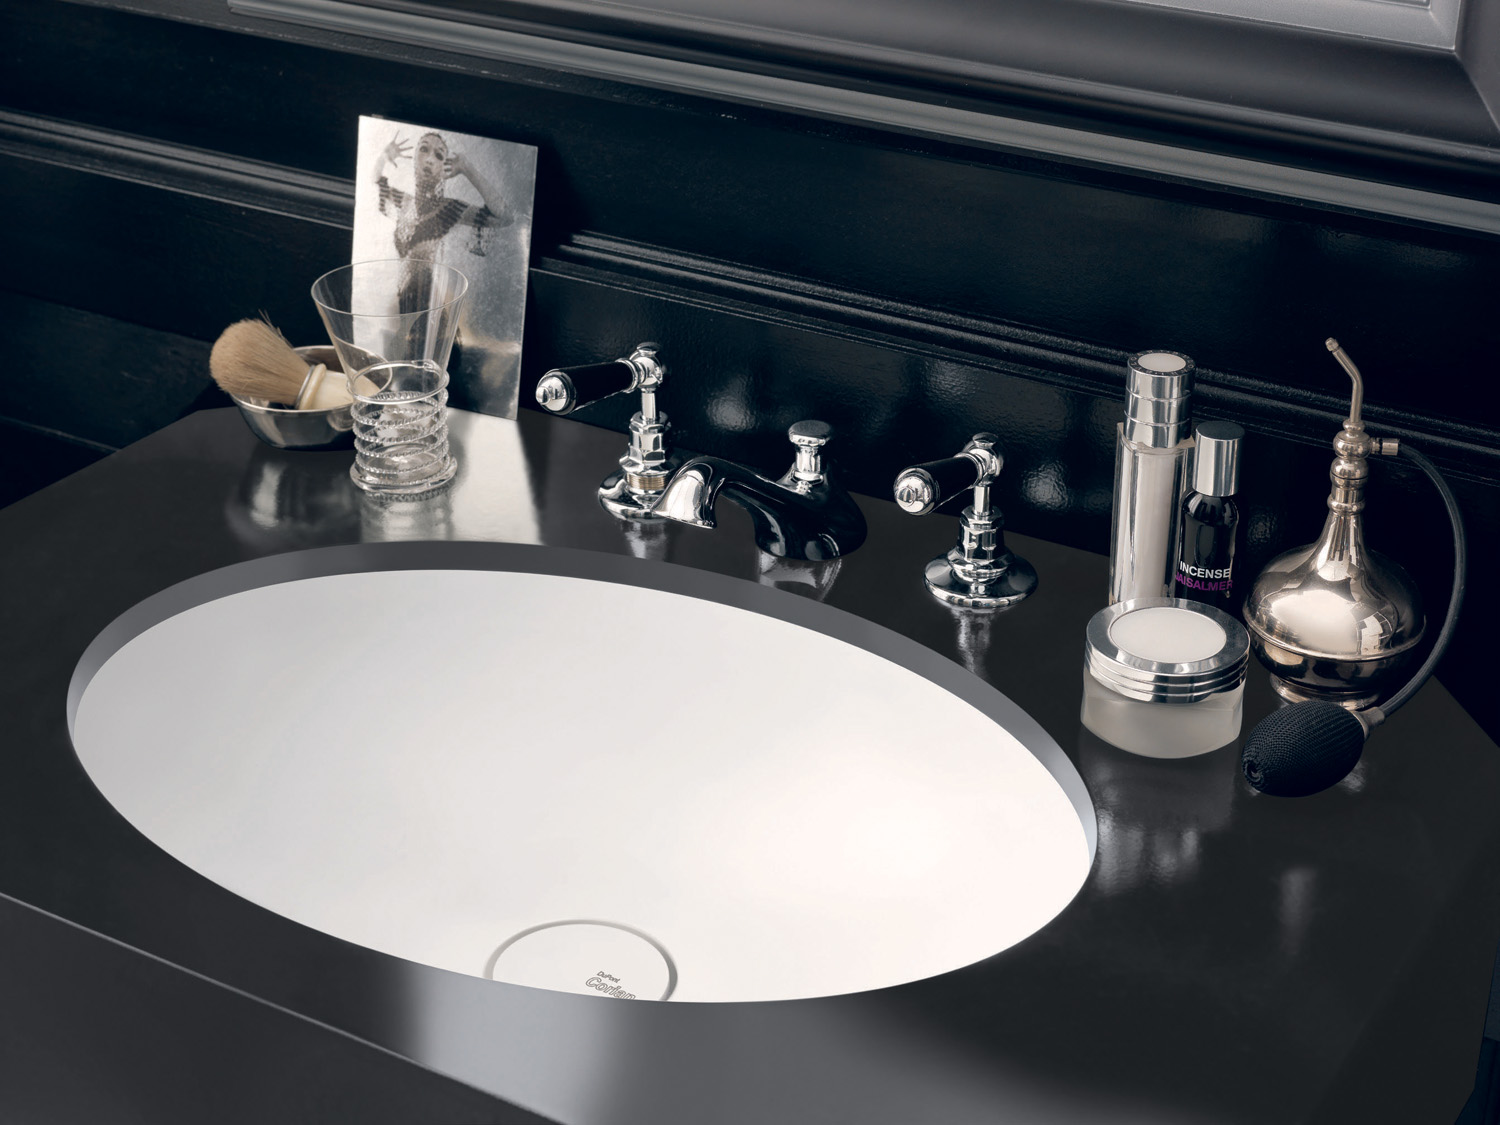 Integrated into a jet-black mount made from Corian Deep Nocturne, the sleek Corian Relax washbasin works in crisp contrast with the dark wall panelling and chequerboard tiled floor to evoke a timeless elegance.